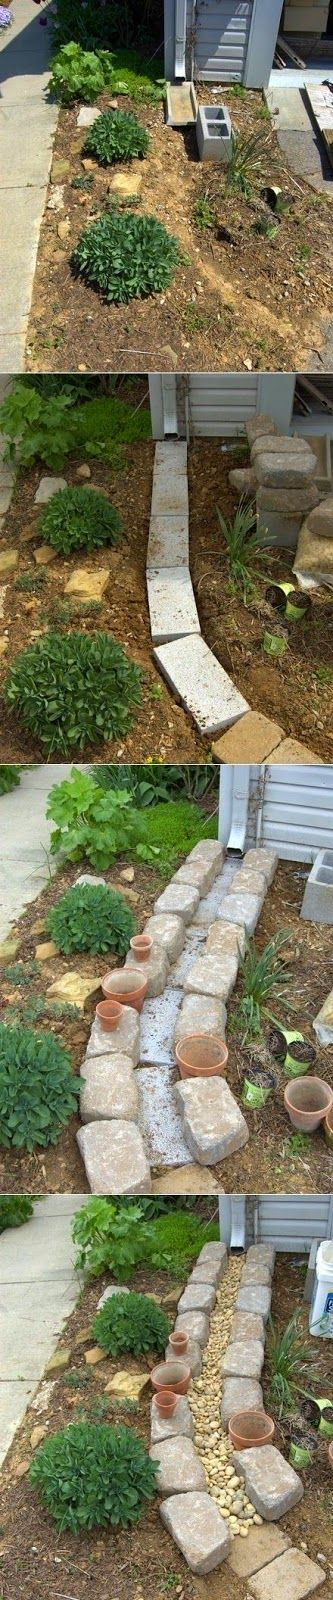 654 best Garten images on Pinterest Urban gardening, Garage - mein garten rtl